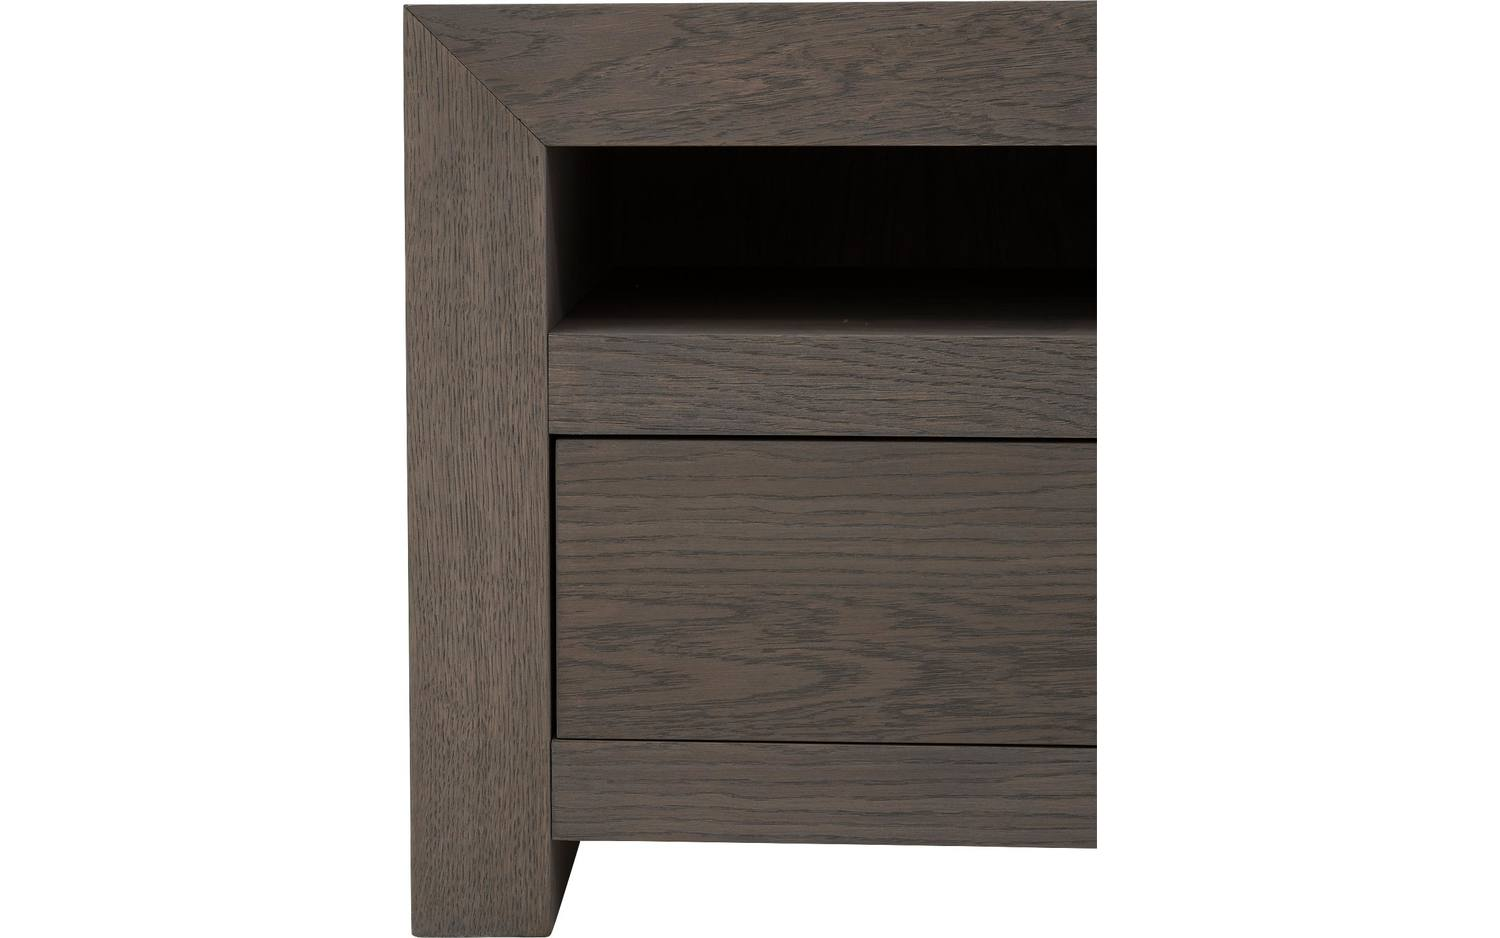 tv anrichte break grau eiche kopen goossens. Black Bedroom Furniture Sets. Home Design Ideas